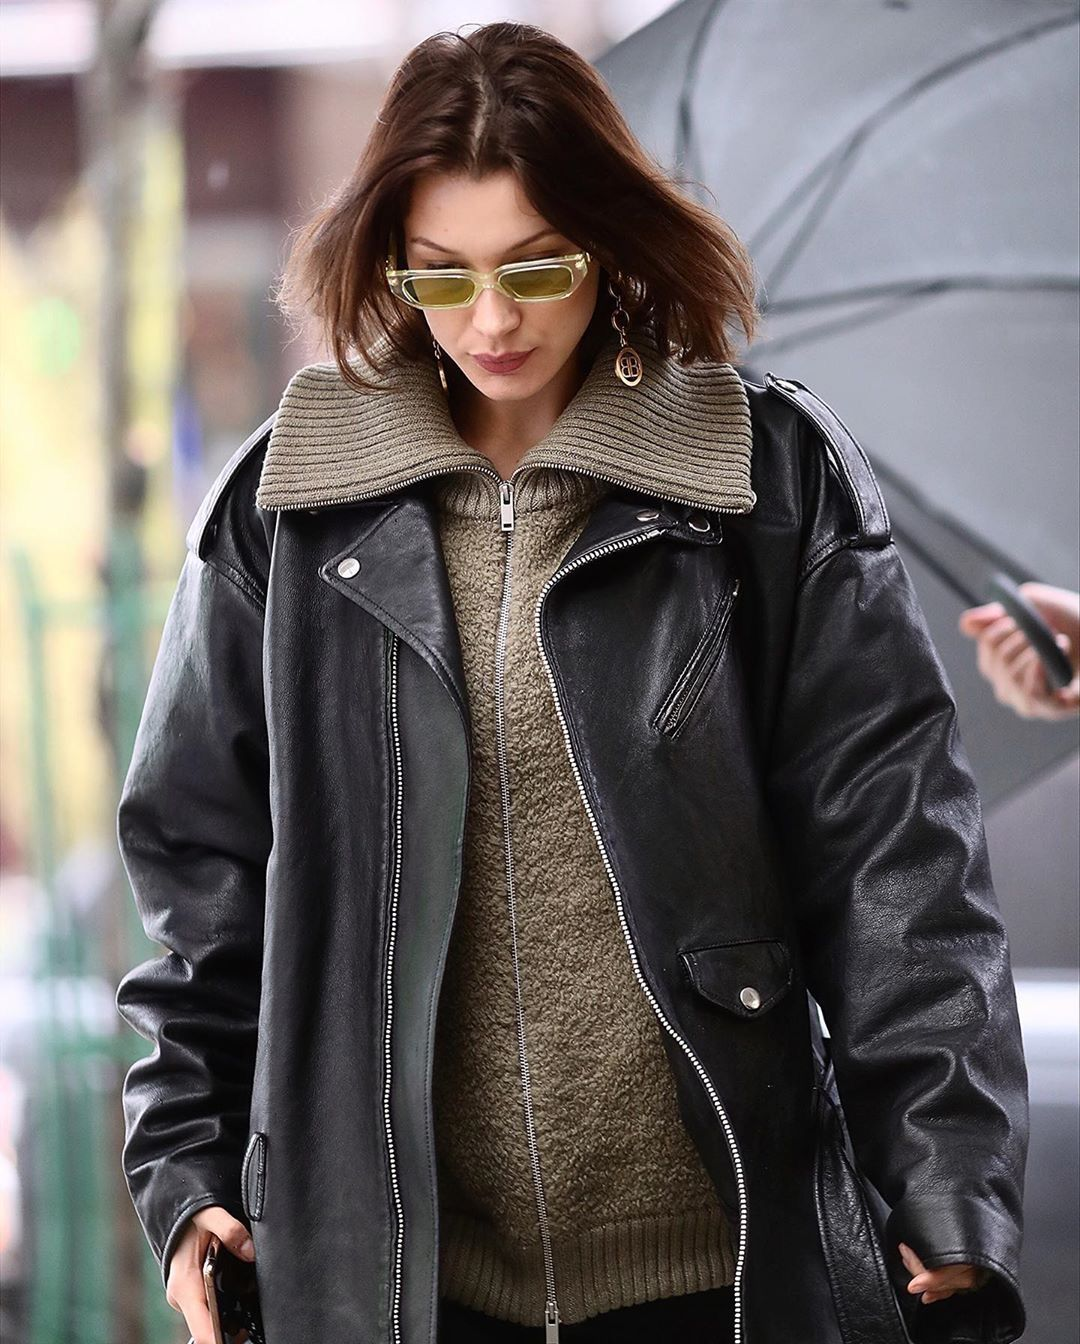 Pin By Realreckless On Gigi Bella Hadid Fashion Leather Jacket Celebrity Style [ 1344 x 1080 Pixel ]